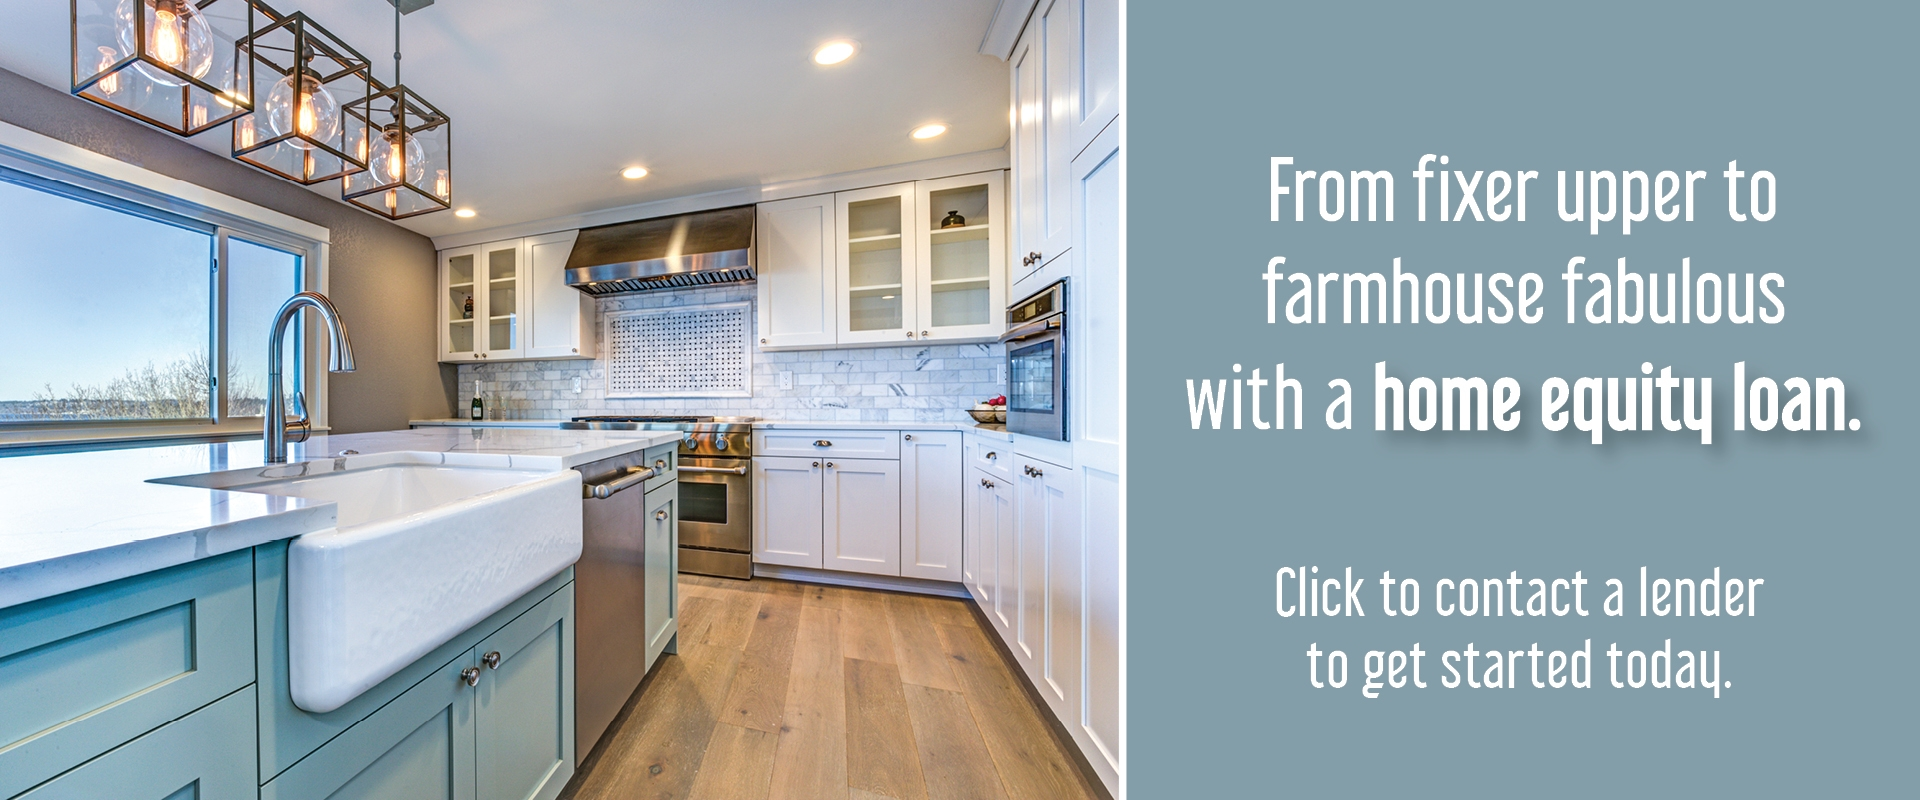 Updated kitchen - From fixer upper to farmhouse fabulous with a home equity loan Banner